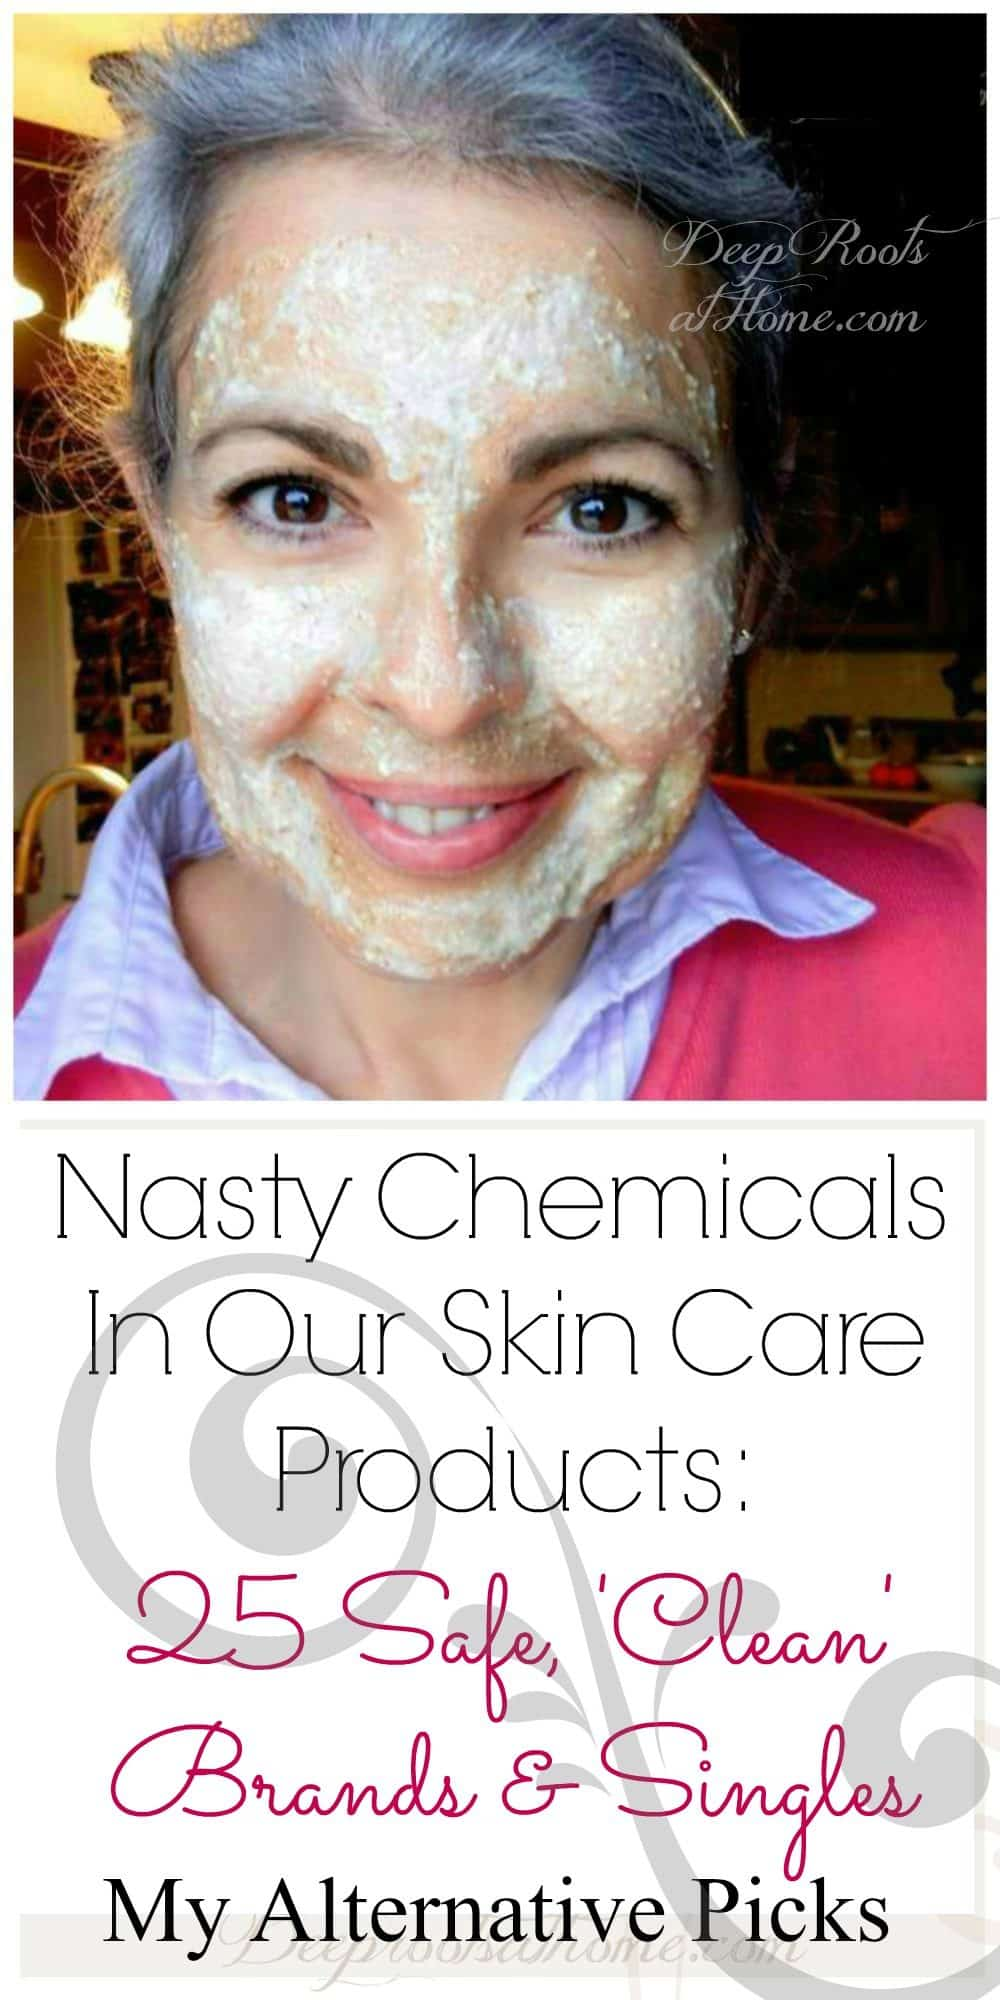 Nasty Chemicals In Our Skin Care Products: 25 Safe Brands & Singles. My face with a facial scrub on it!